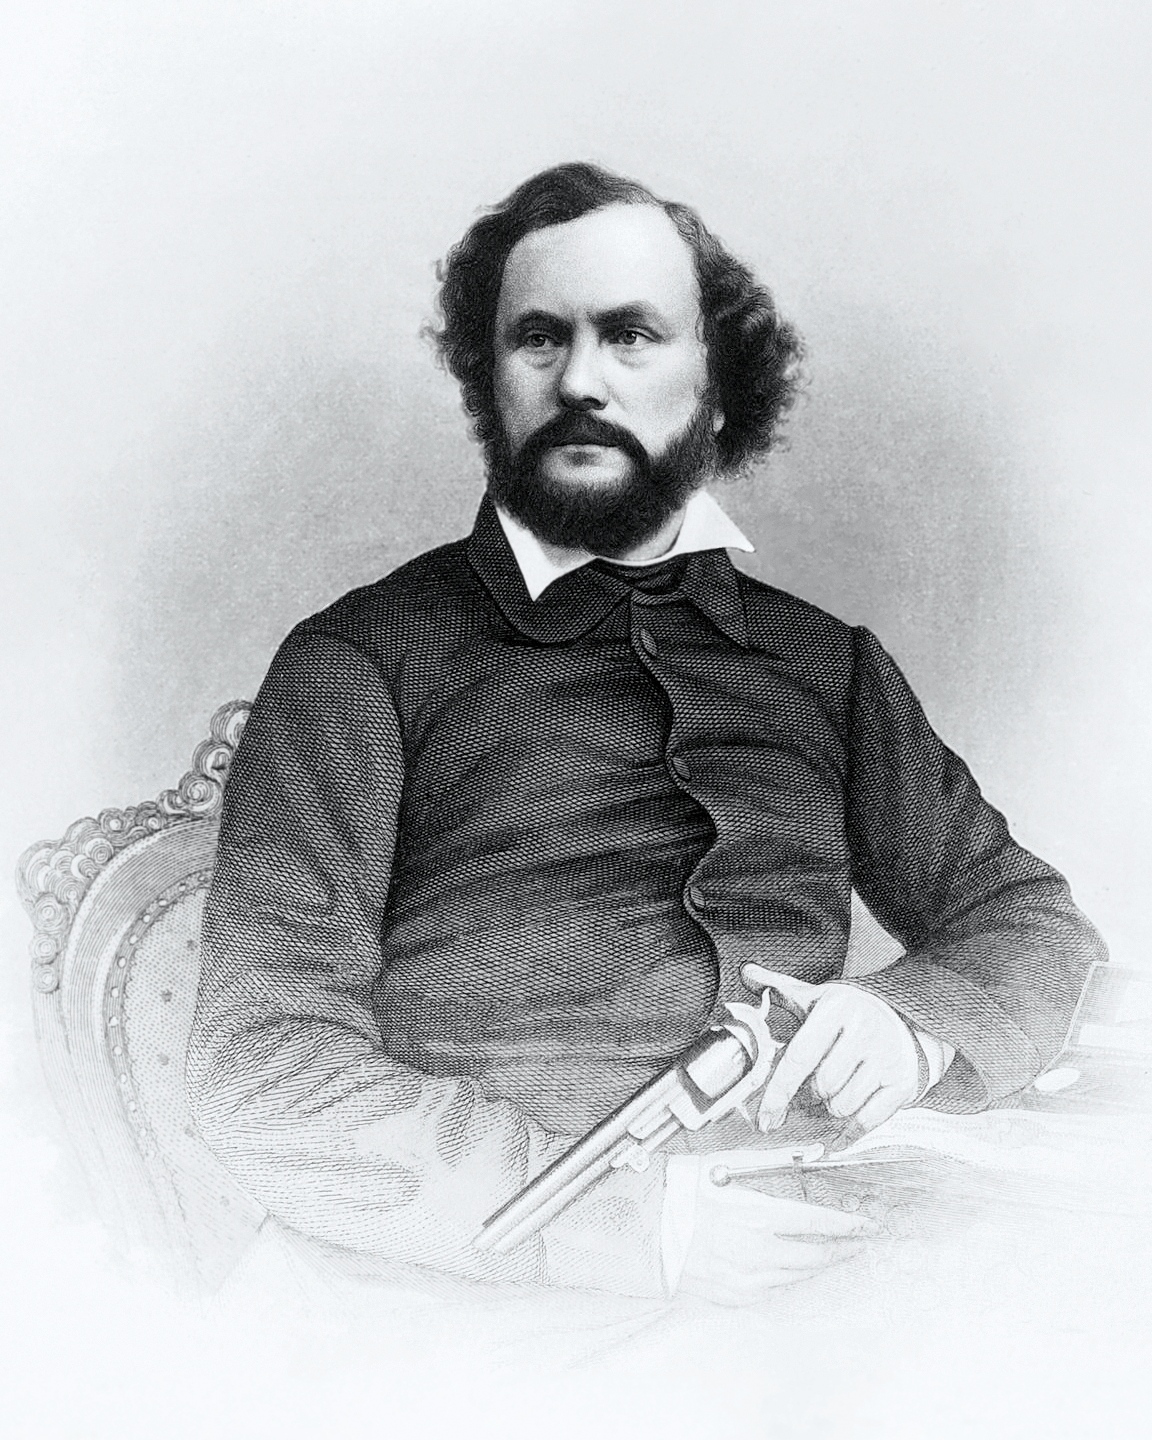 Portrait of Samuel Colt by John Chester Buttre